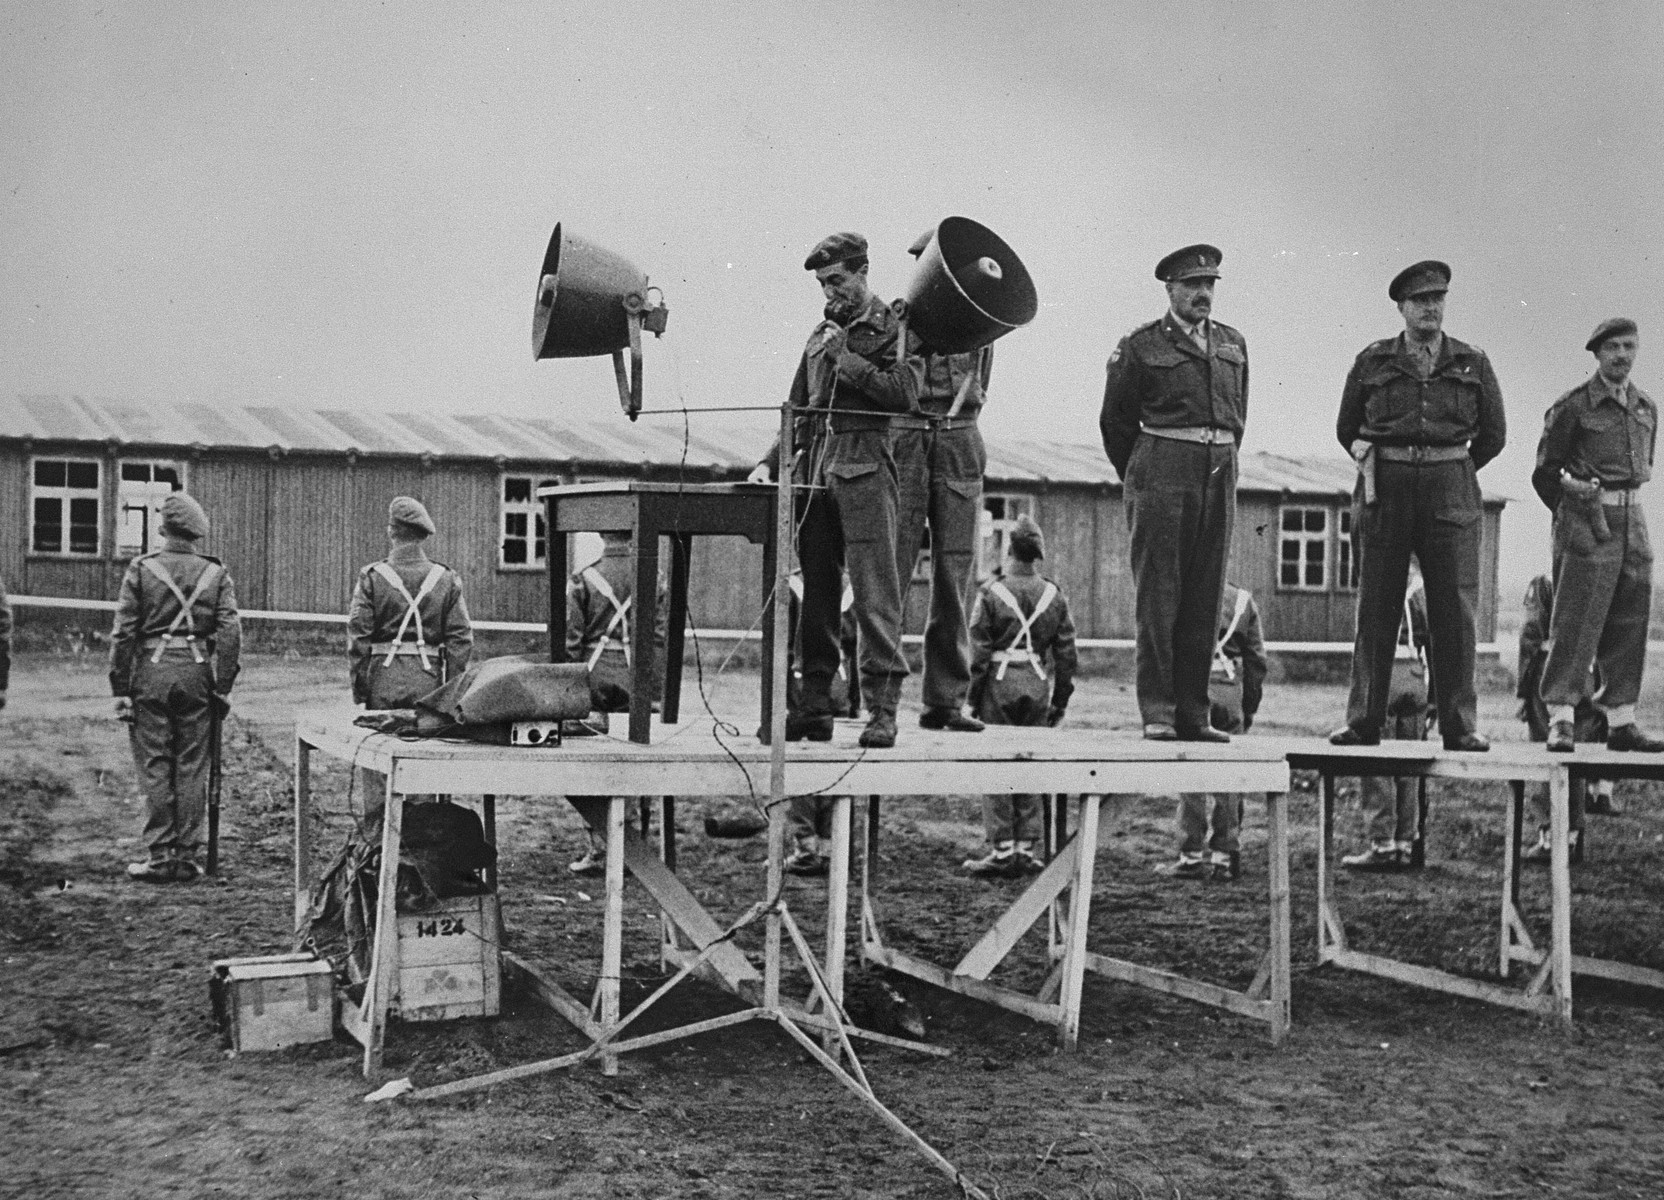 Brigader General Glyn Hughes gives the order to set fire to the barracks in camp no. 1 of the former Belsen concentration camp.    Belsen had to be burned down to prevent the spread of typhus.  At extreme right is Col. Johnson of Medical Corps, 32 CCS.